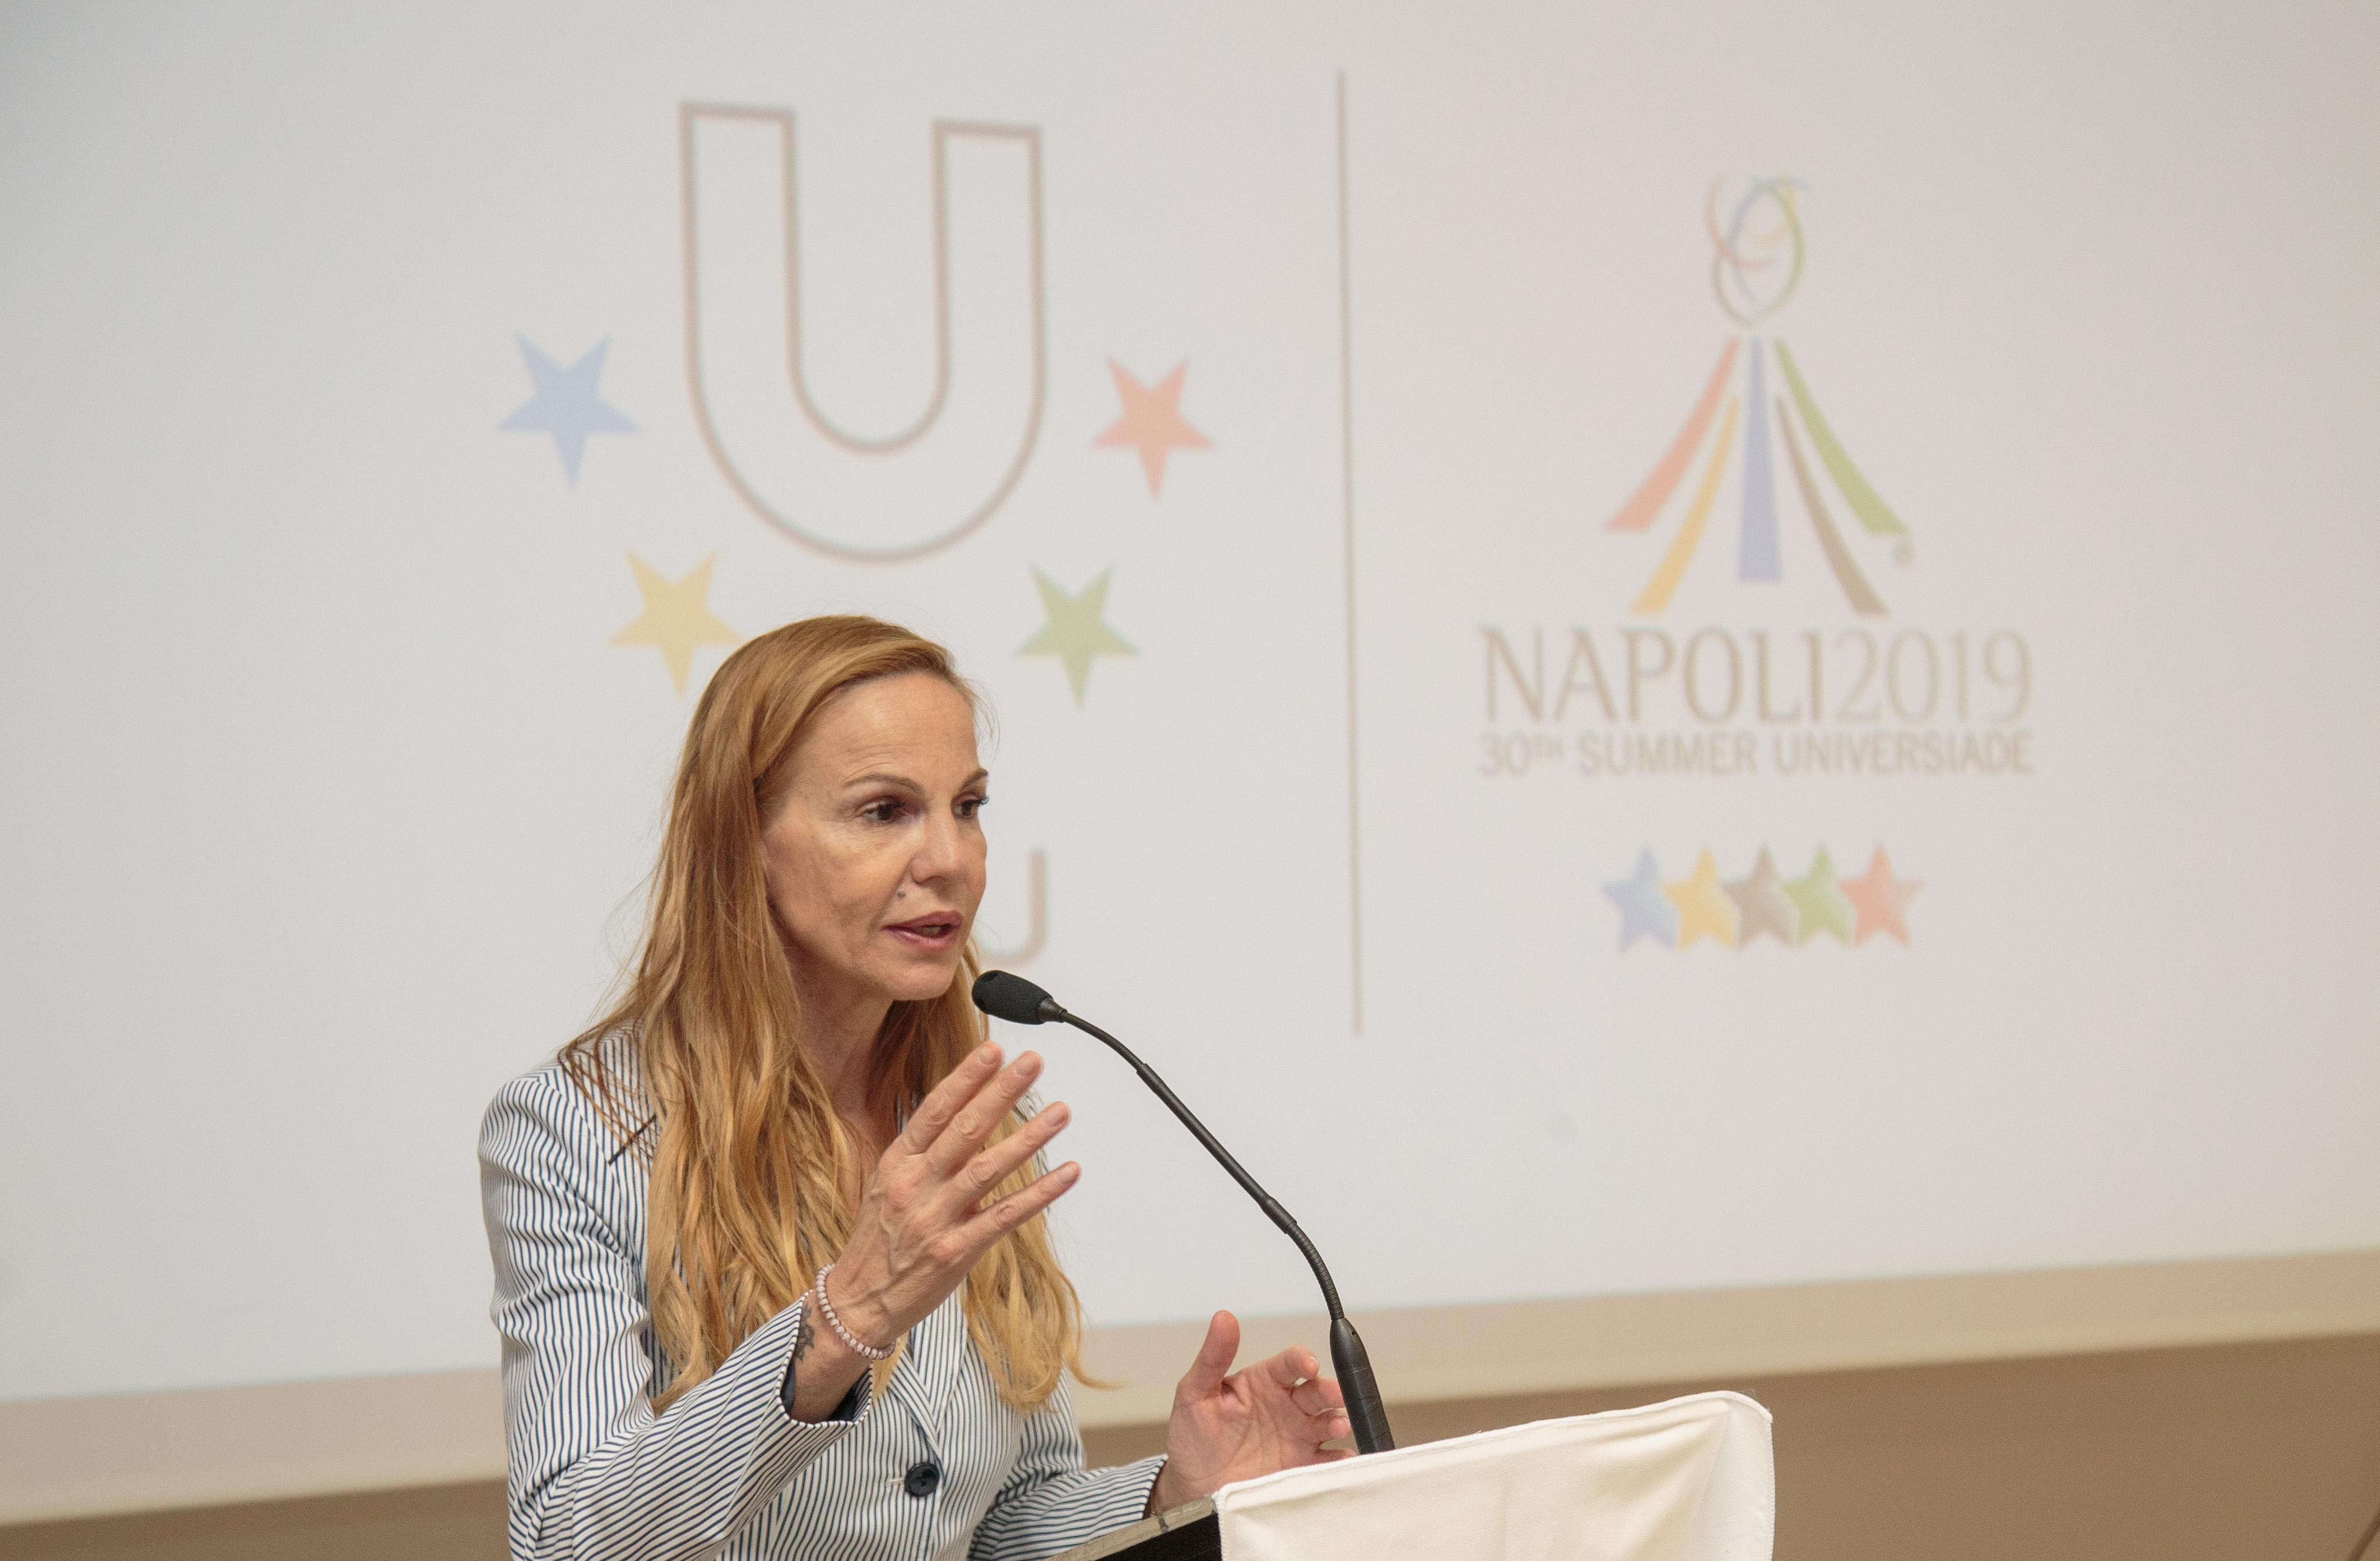 Torch Relay Napoli 2019 – Matera